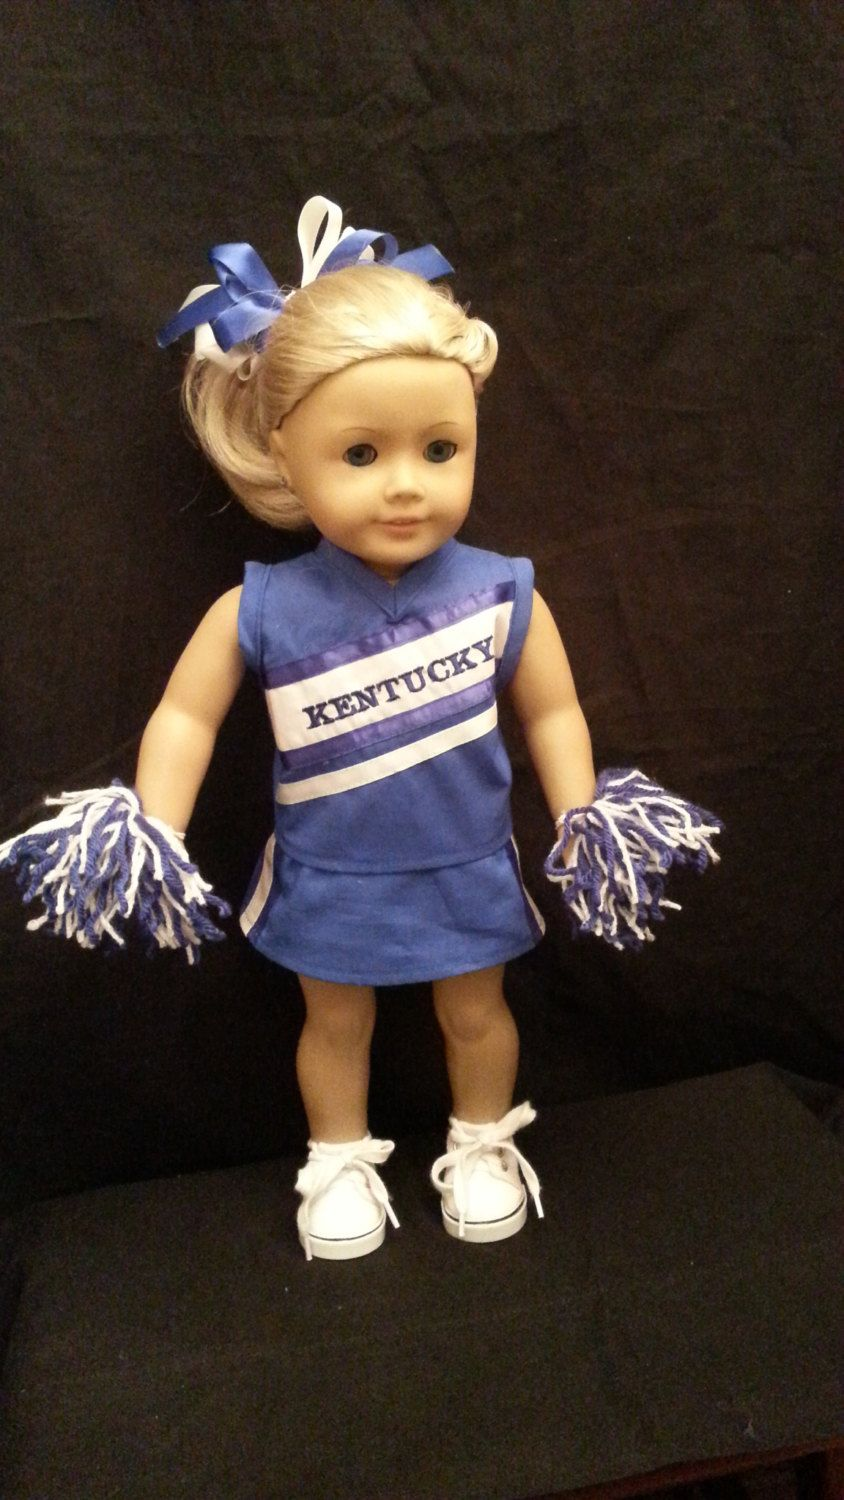 8cd7a3de57b Homemade 18 Inch Doll Clothes: KY Cheerleading Outfit Includes Top ...